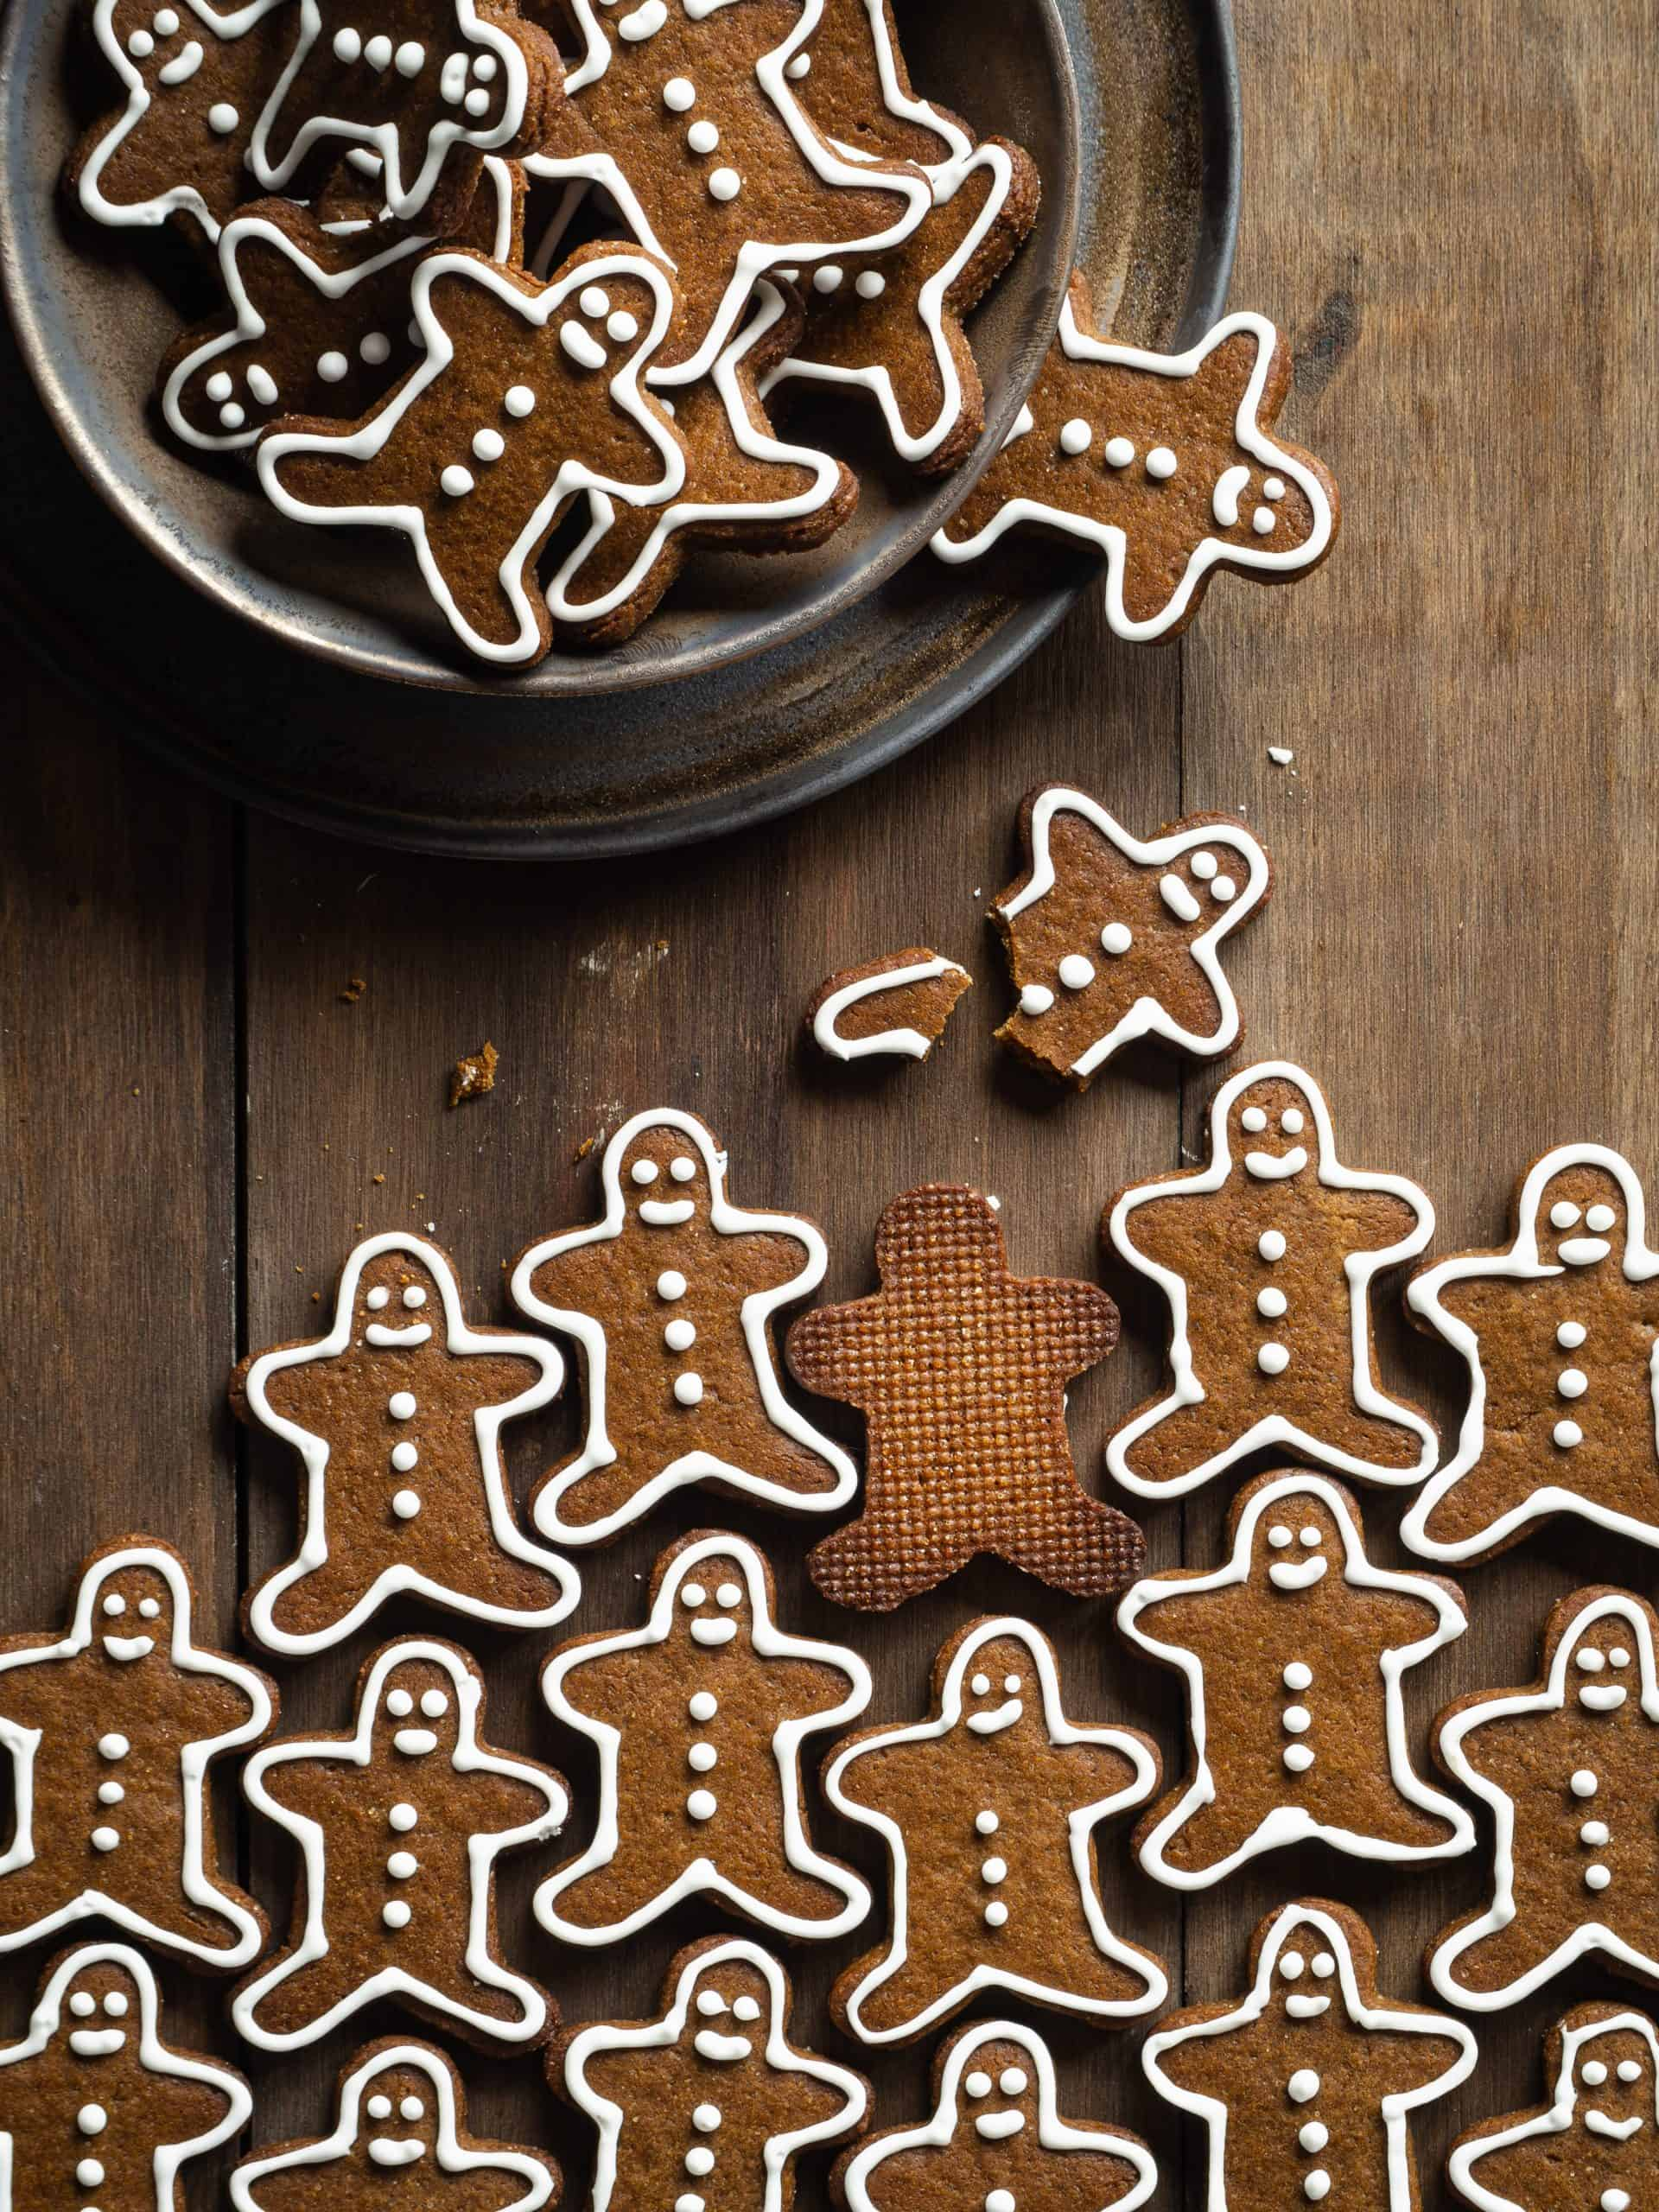 cookie cutter business strategy